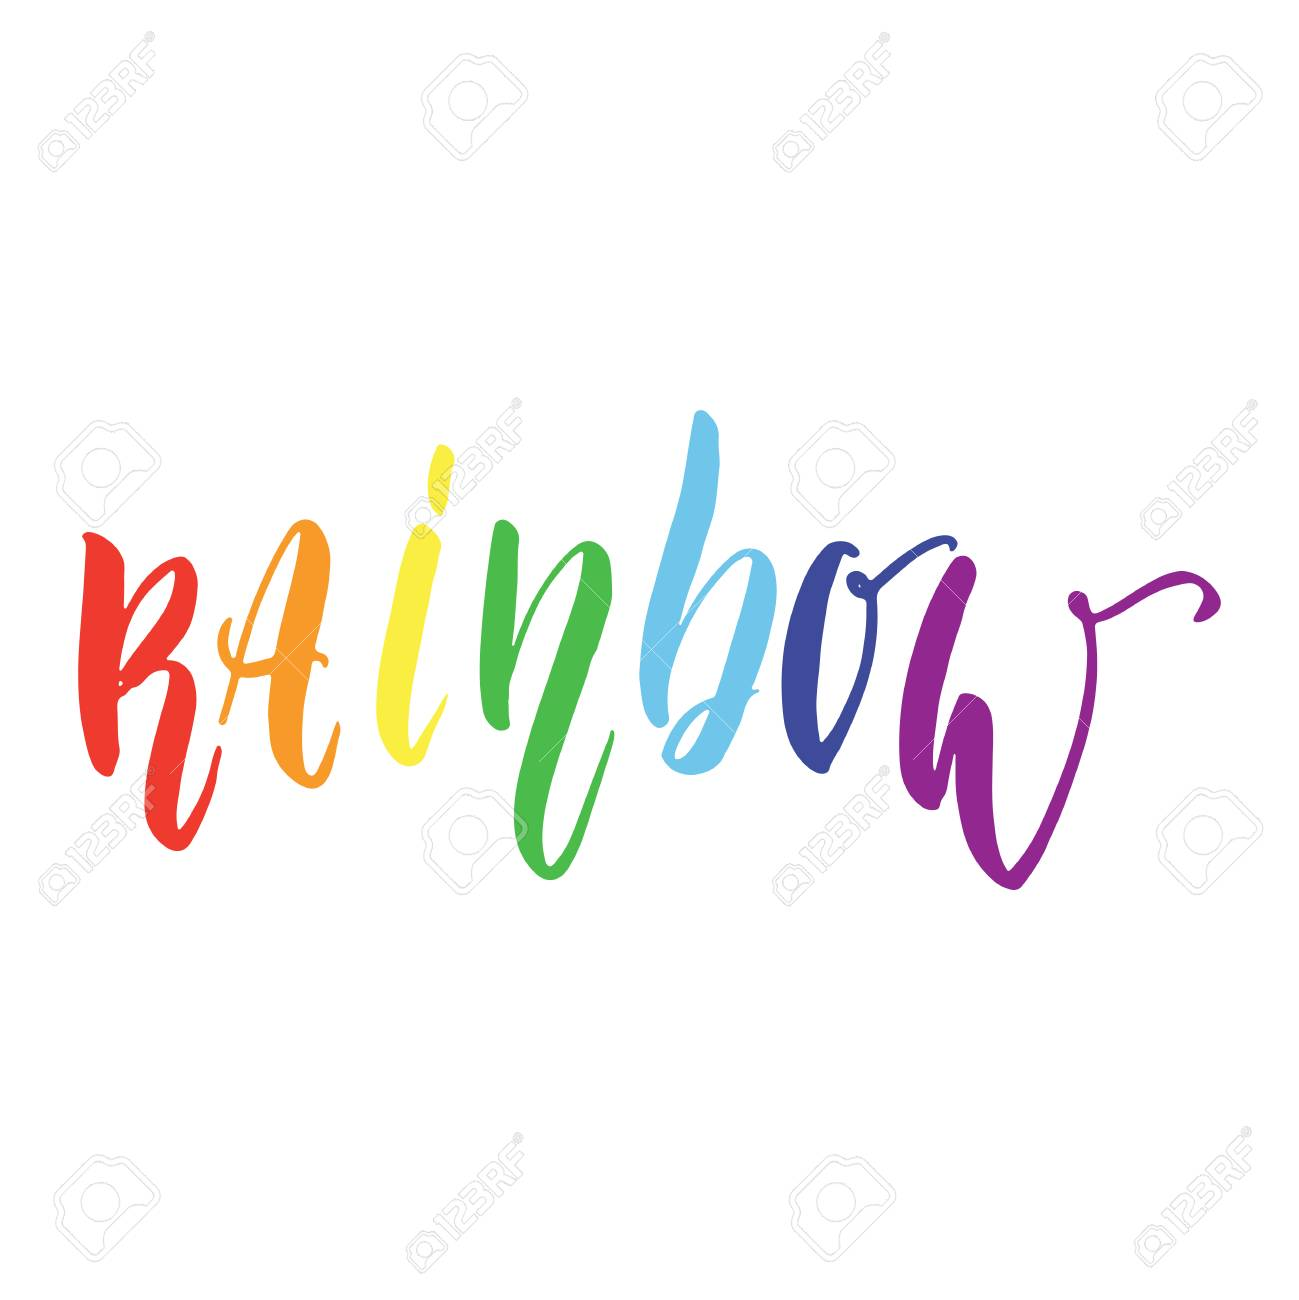 rainbow lgbt slogan hand drawn lettering quote with heart isolated